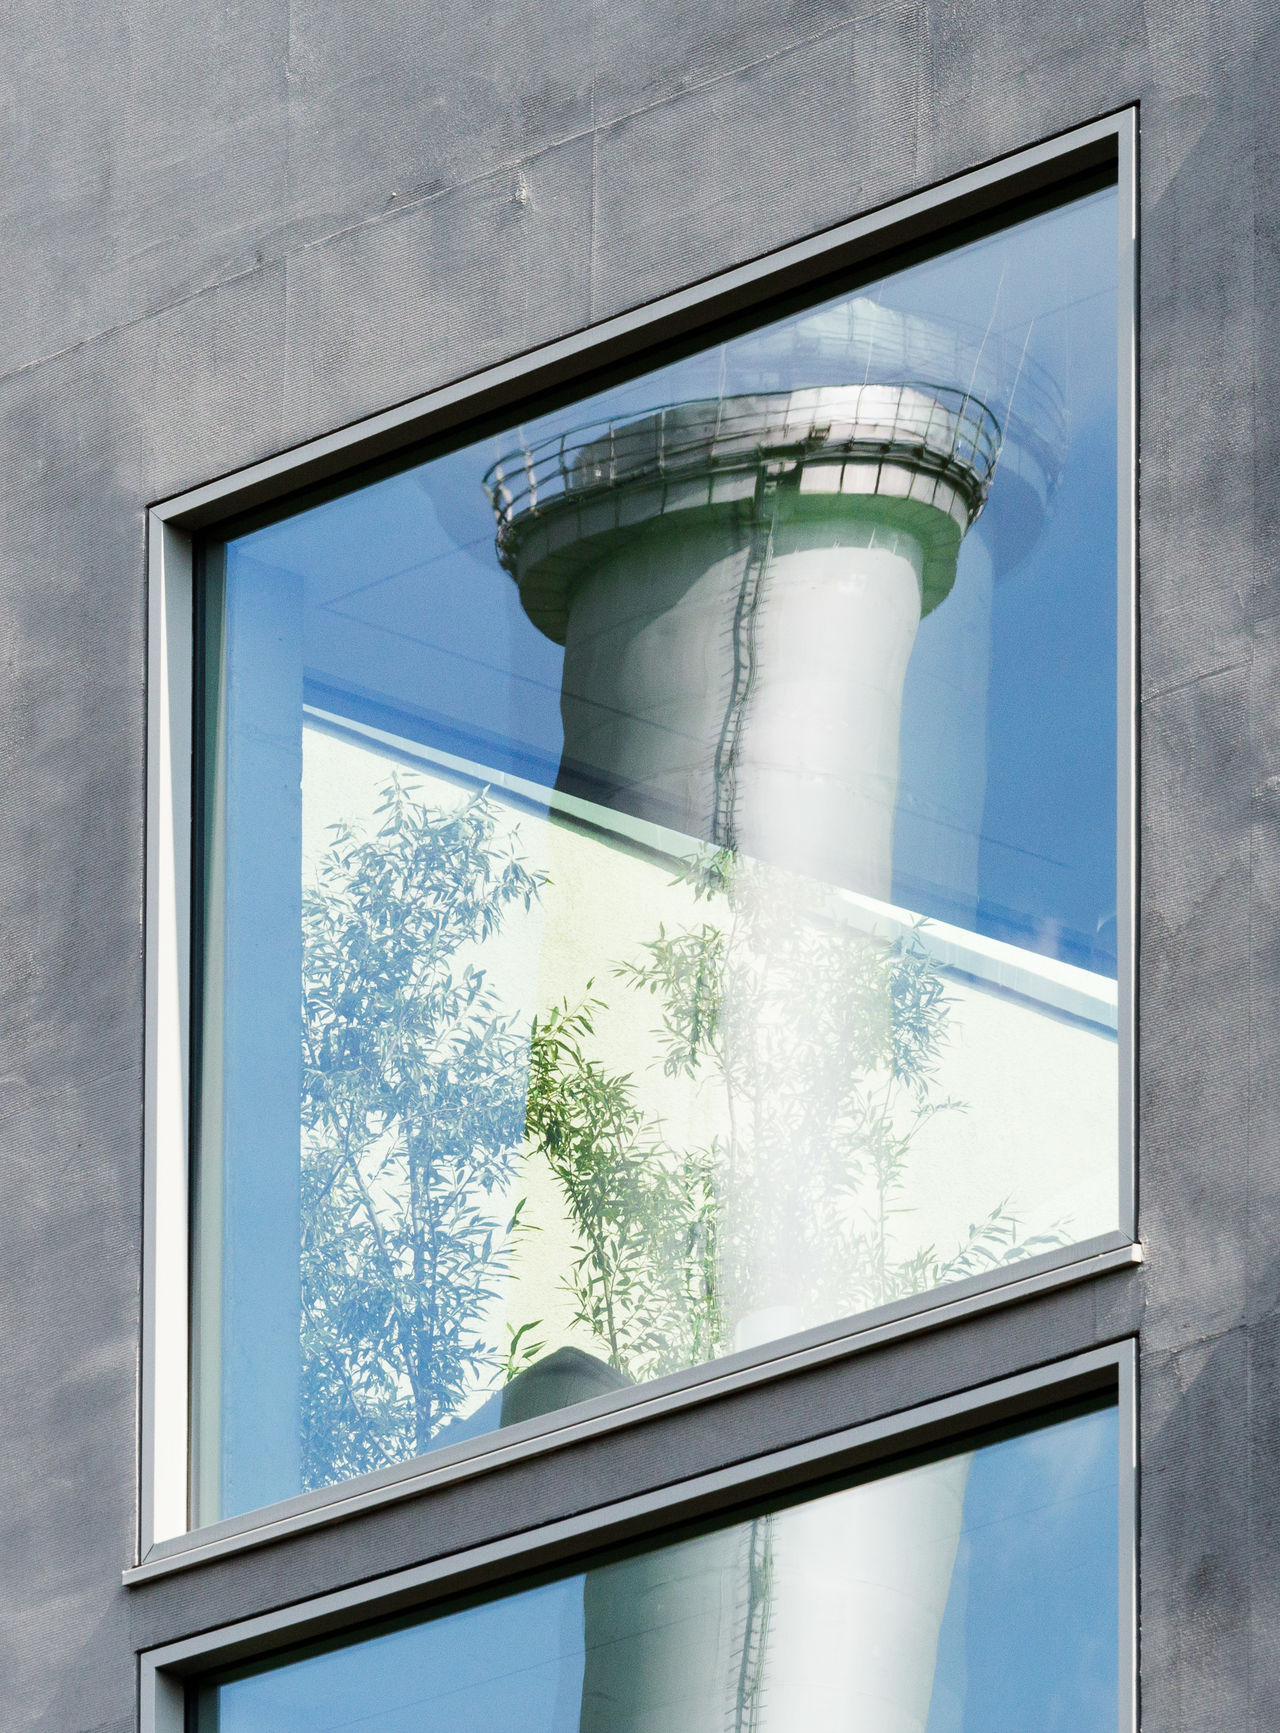 Reflection of chimney on window